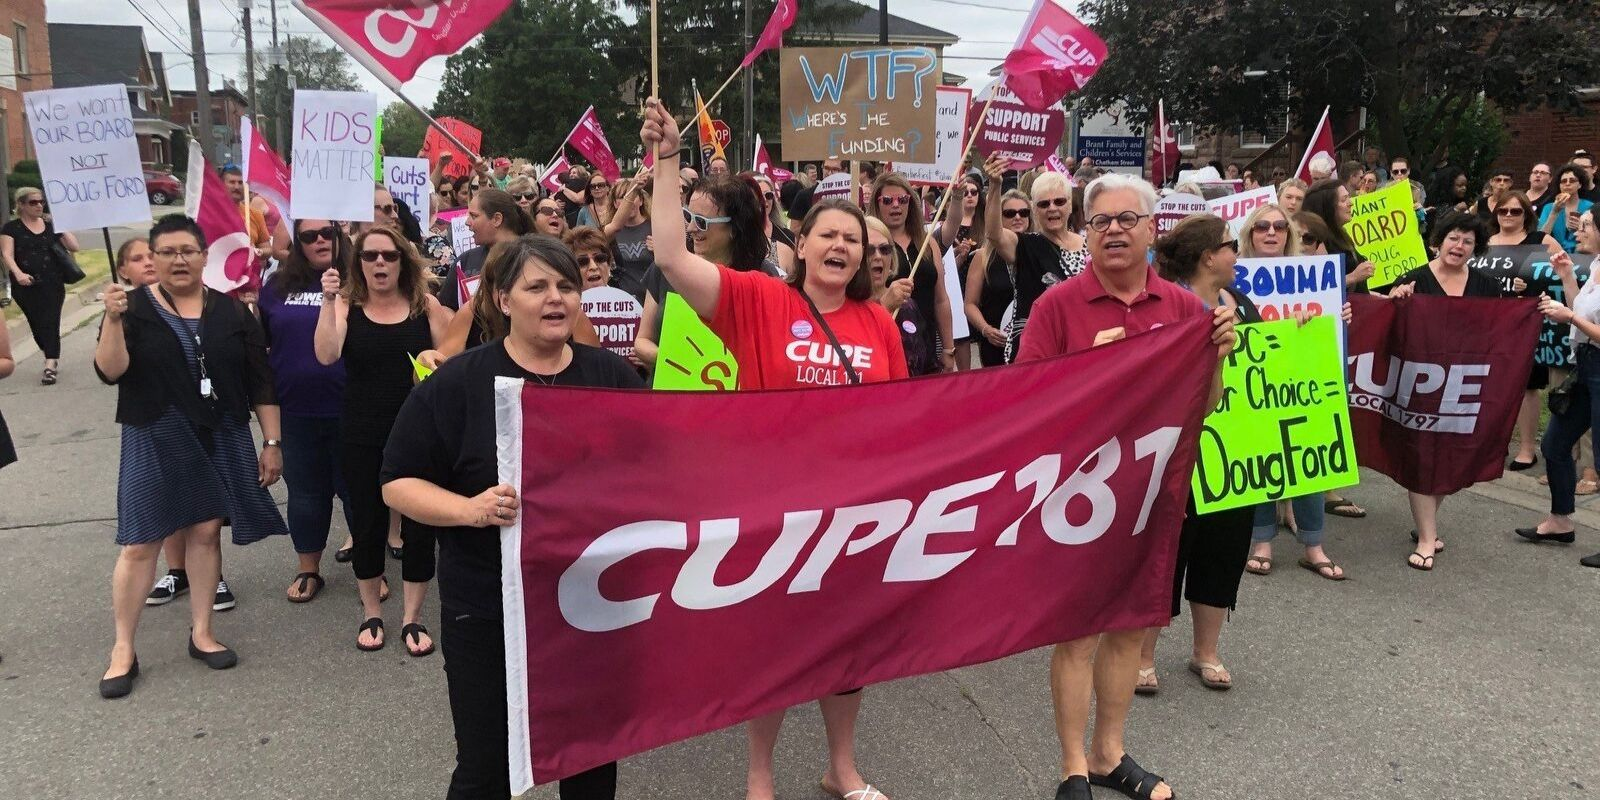 55,000 Ontario education workers to go on strike